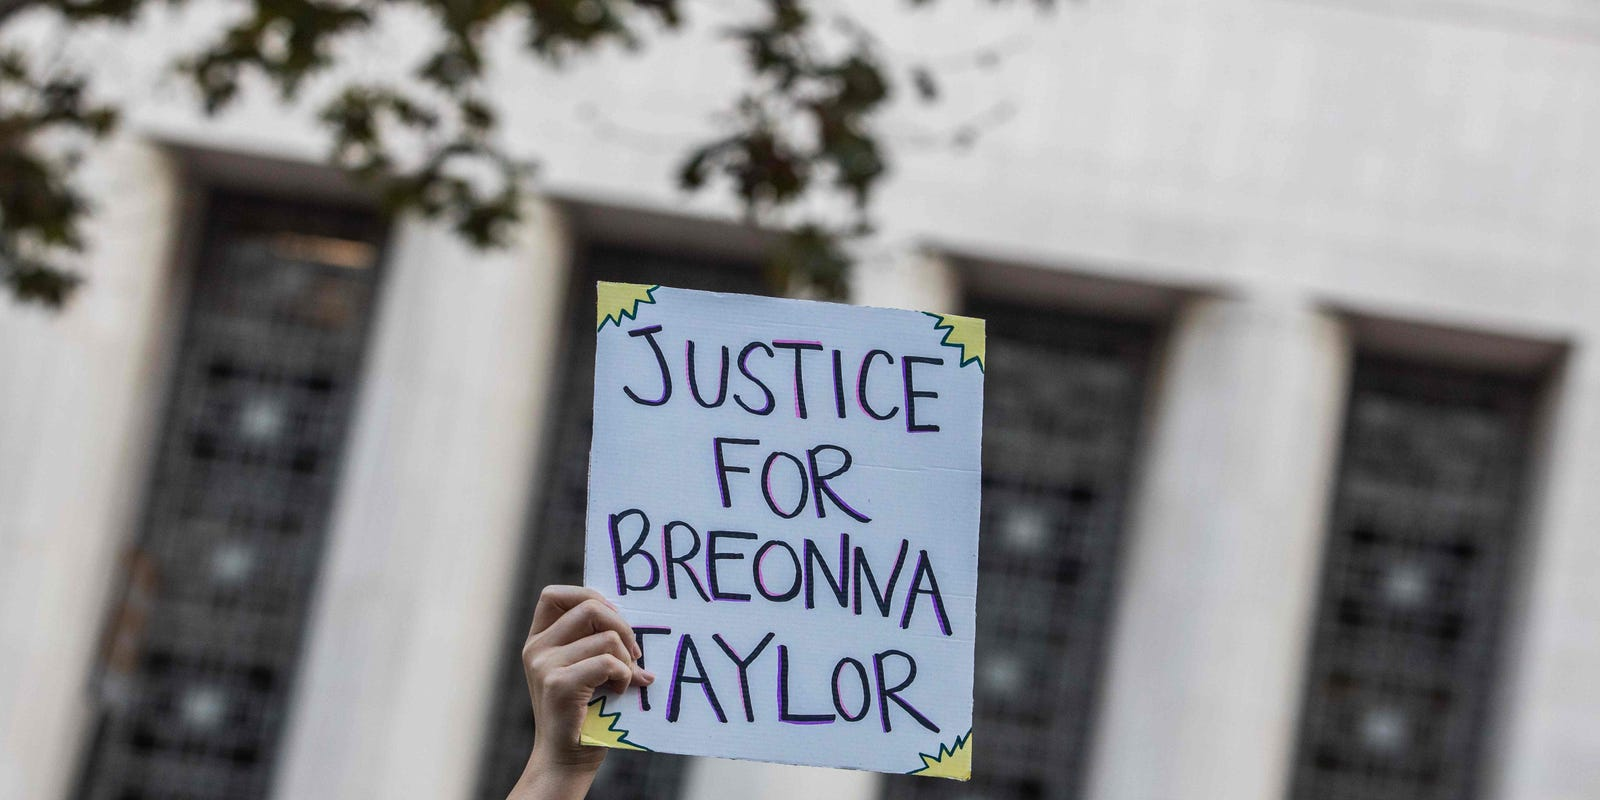 Breonna Taylor Prosecutors Can T Charge Officers Without Evidence